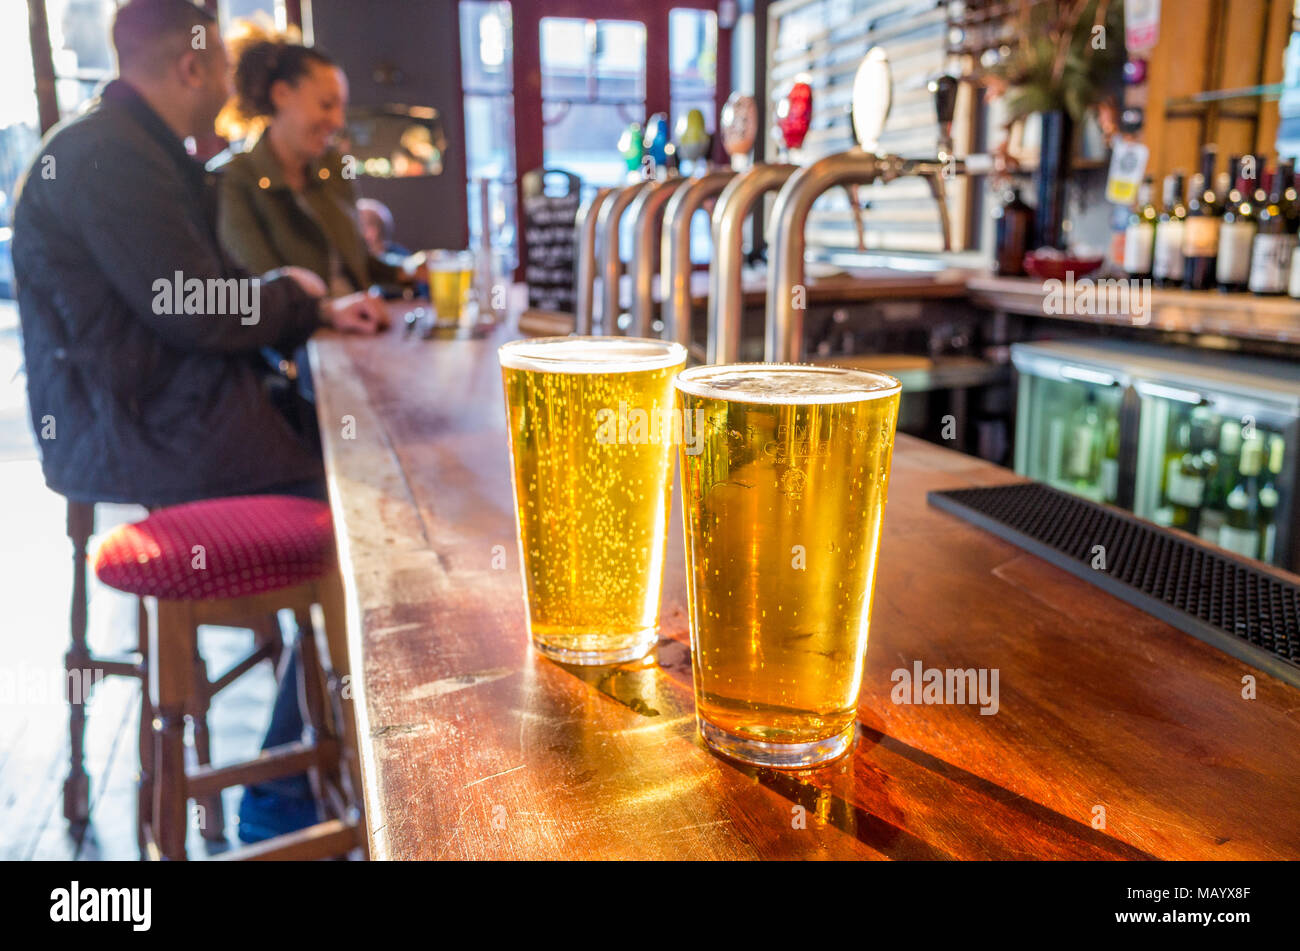 Close up of two pints of lager on the bar of a pub, UK, London - Stock Image